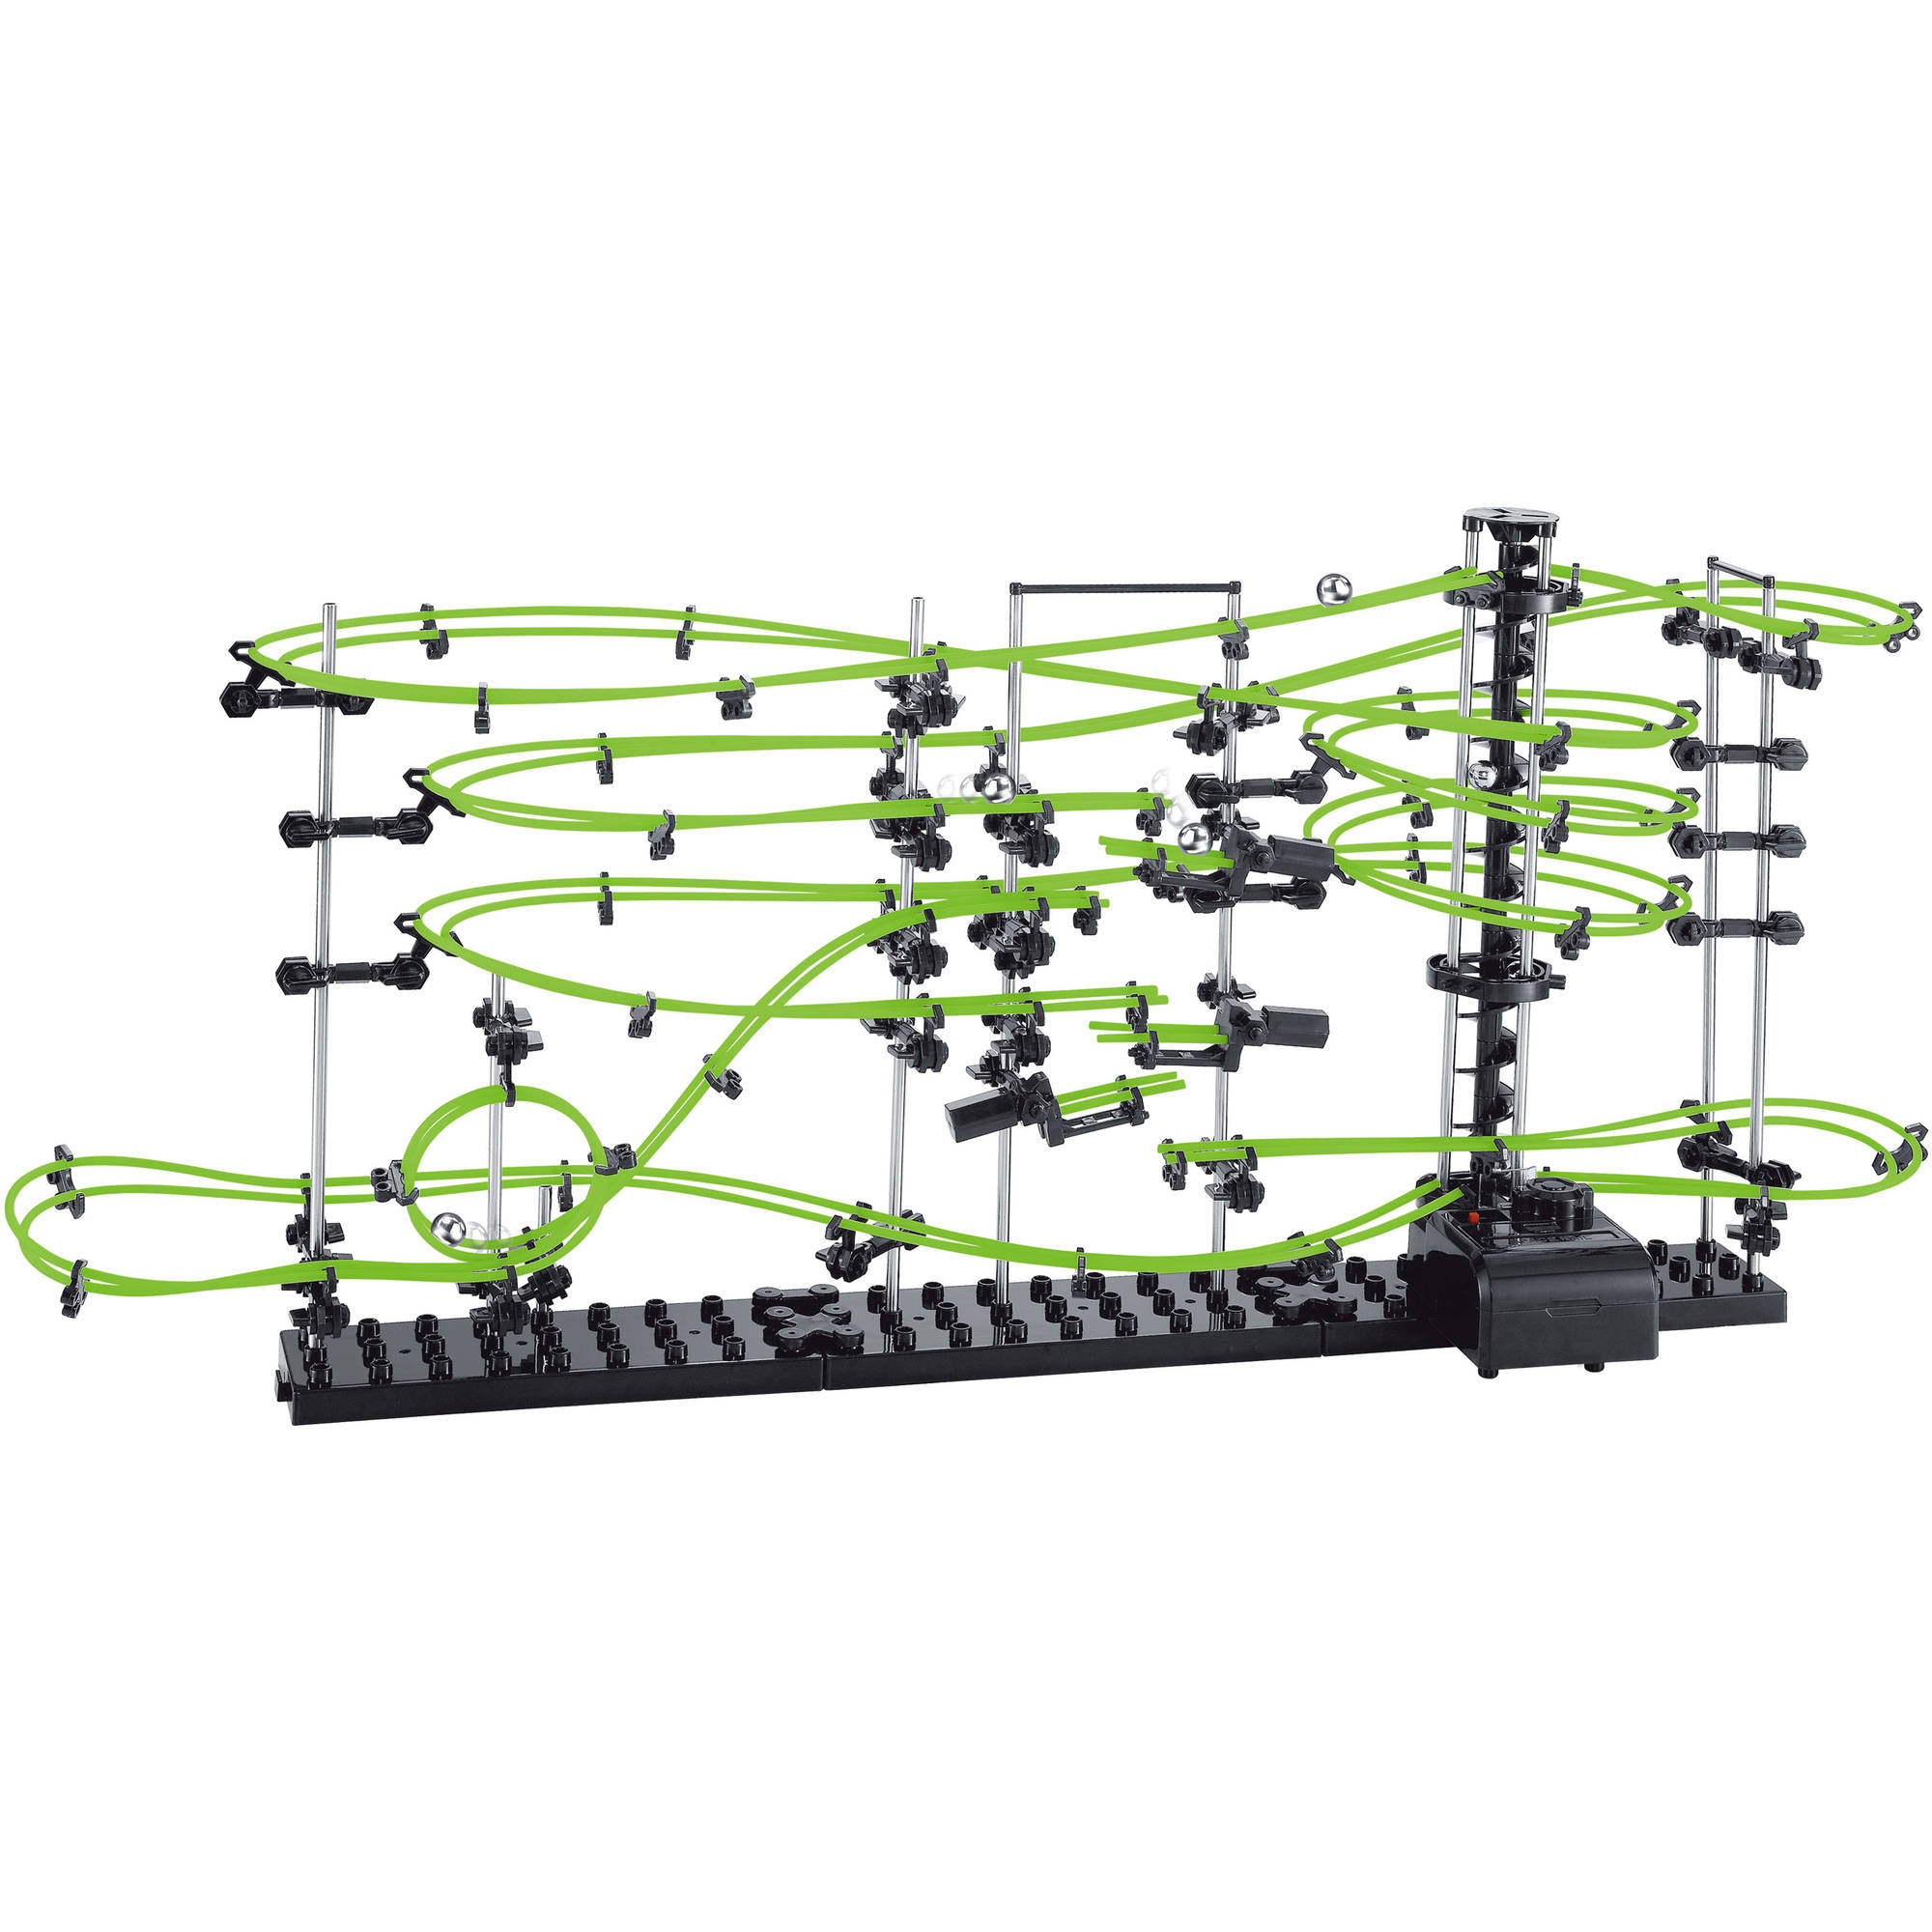 Space Rail Glow in the Dark 13,500mm Rail Marble Game, Level 3